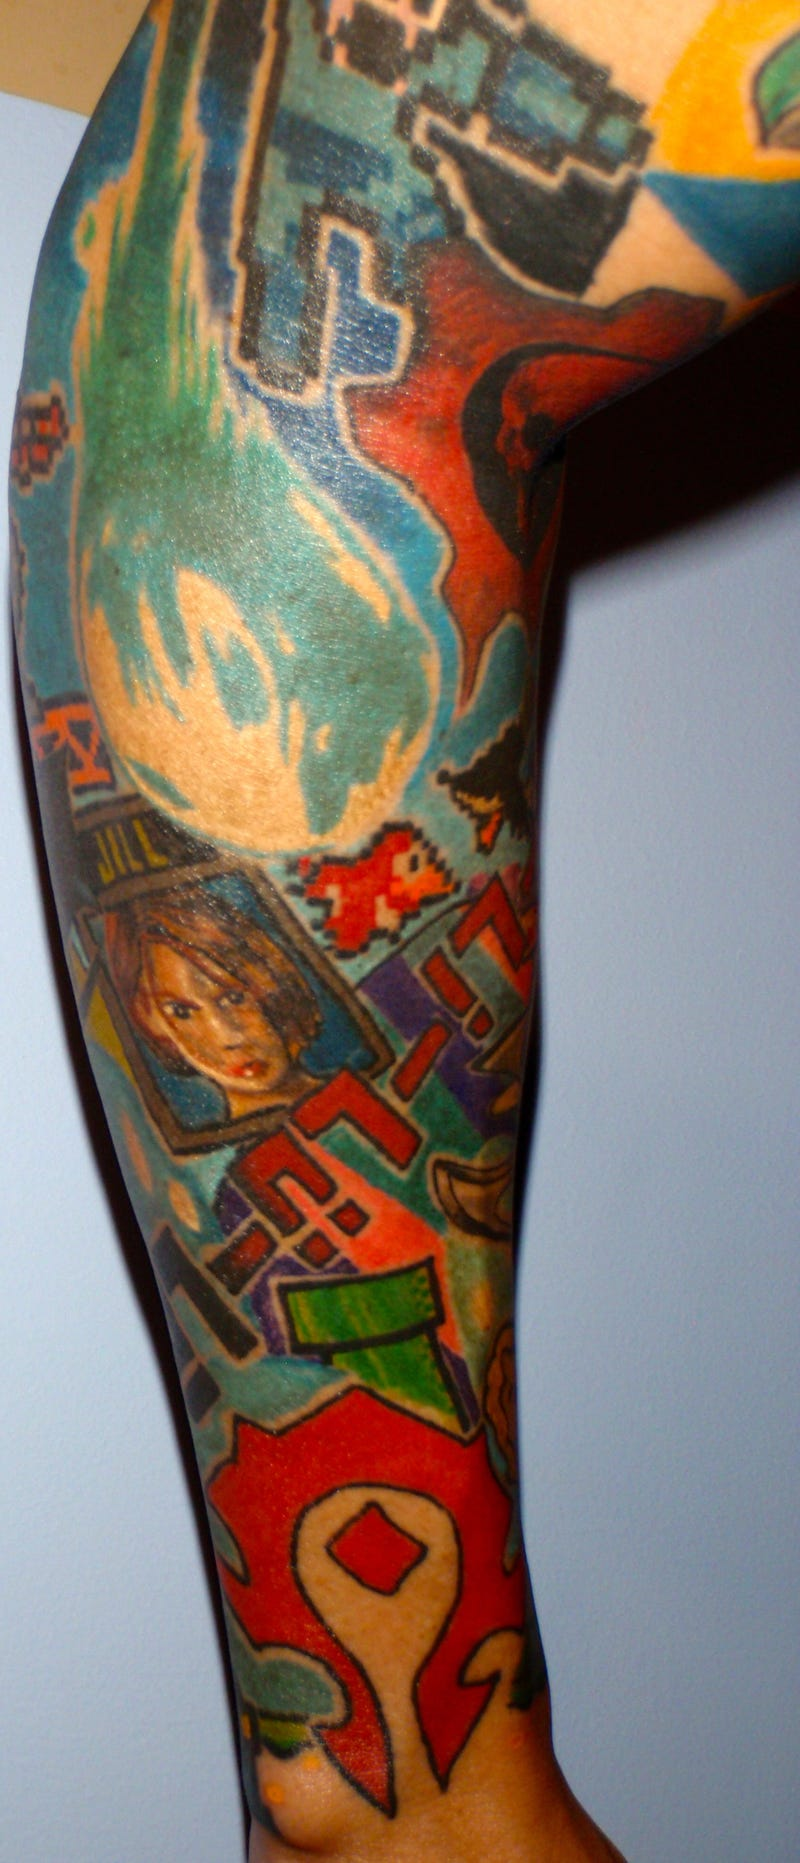 Your Favorite Video Game Is Probably Part of This Guy's Amazing Tattoo